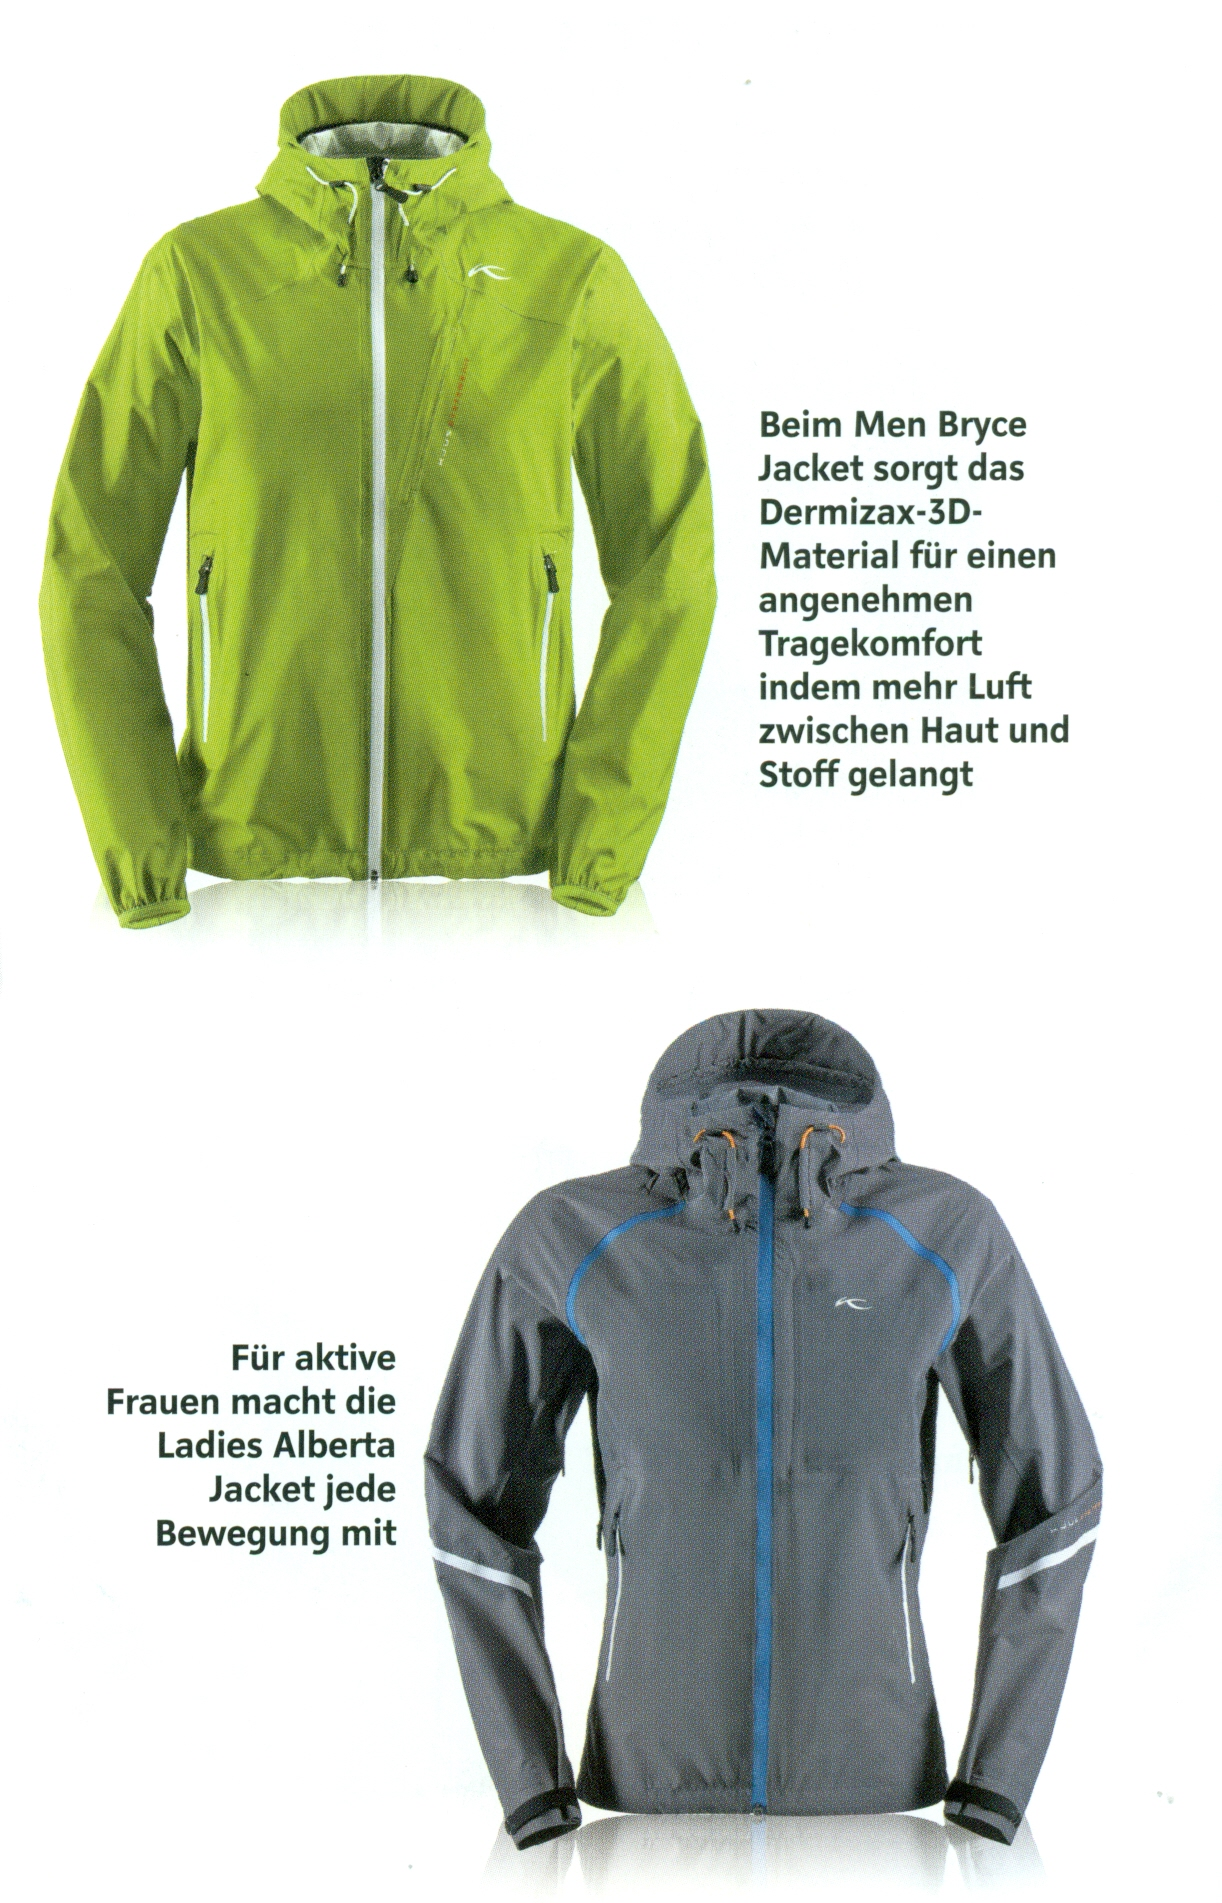 Kjus Men Bryce jacket & Ladies Alberta